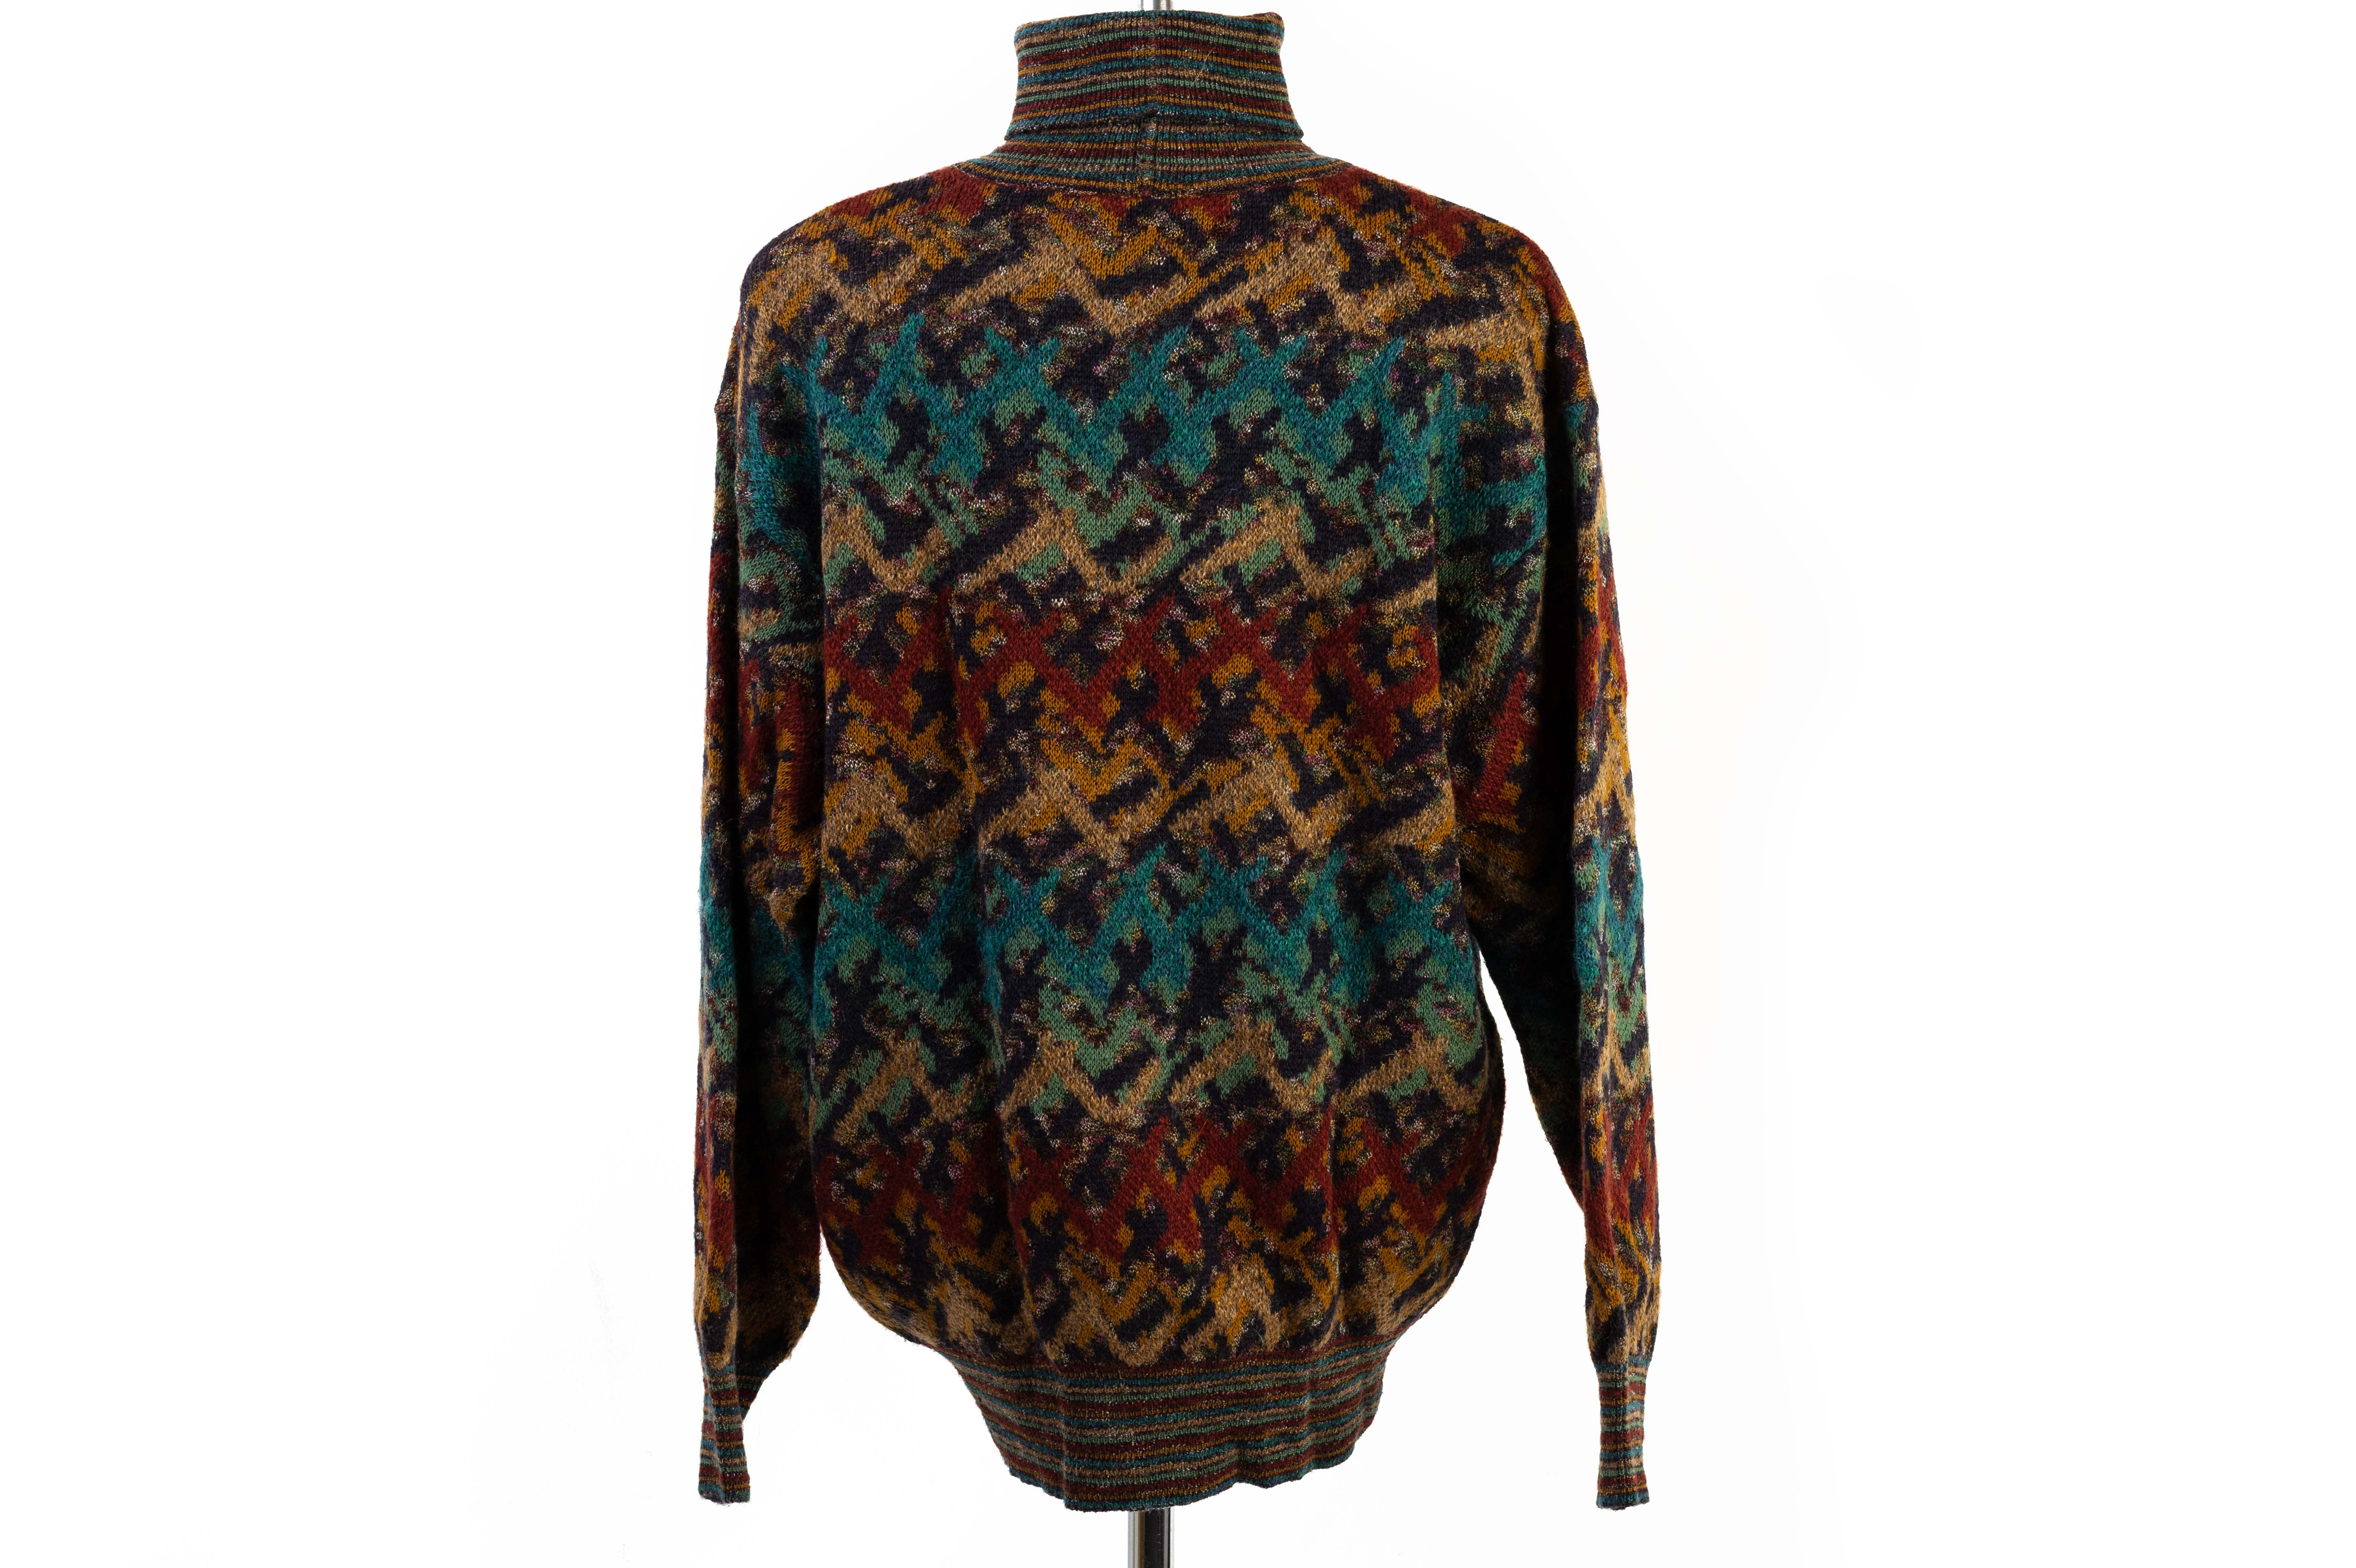 A MISSONI SPORT KNITTED ROLLNECK SWEATER - Image 3 of 4